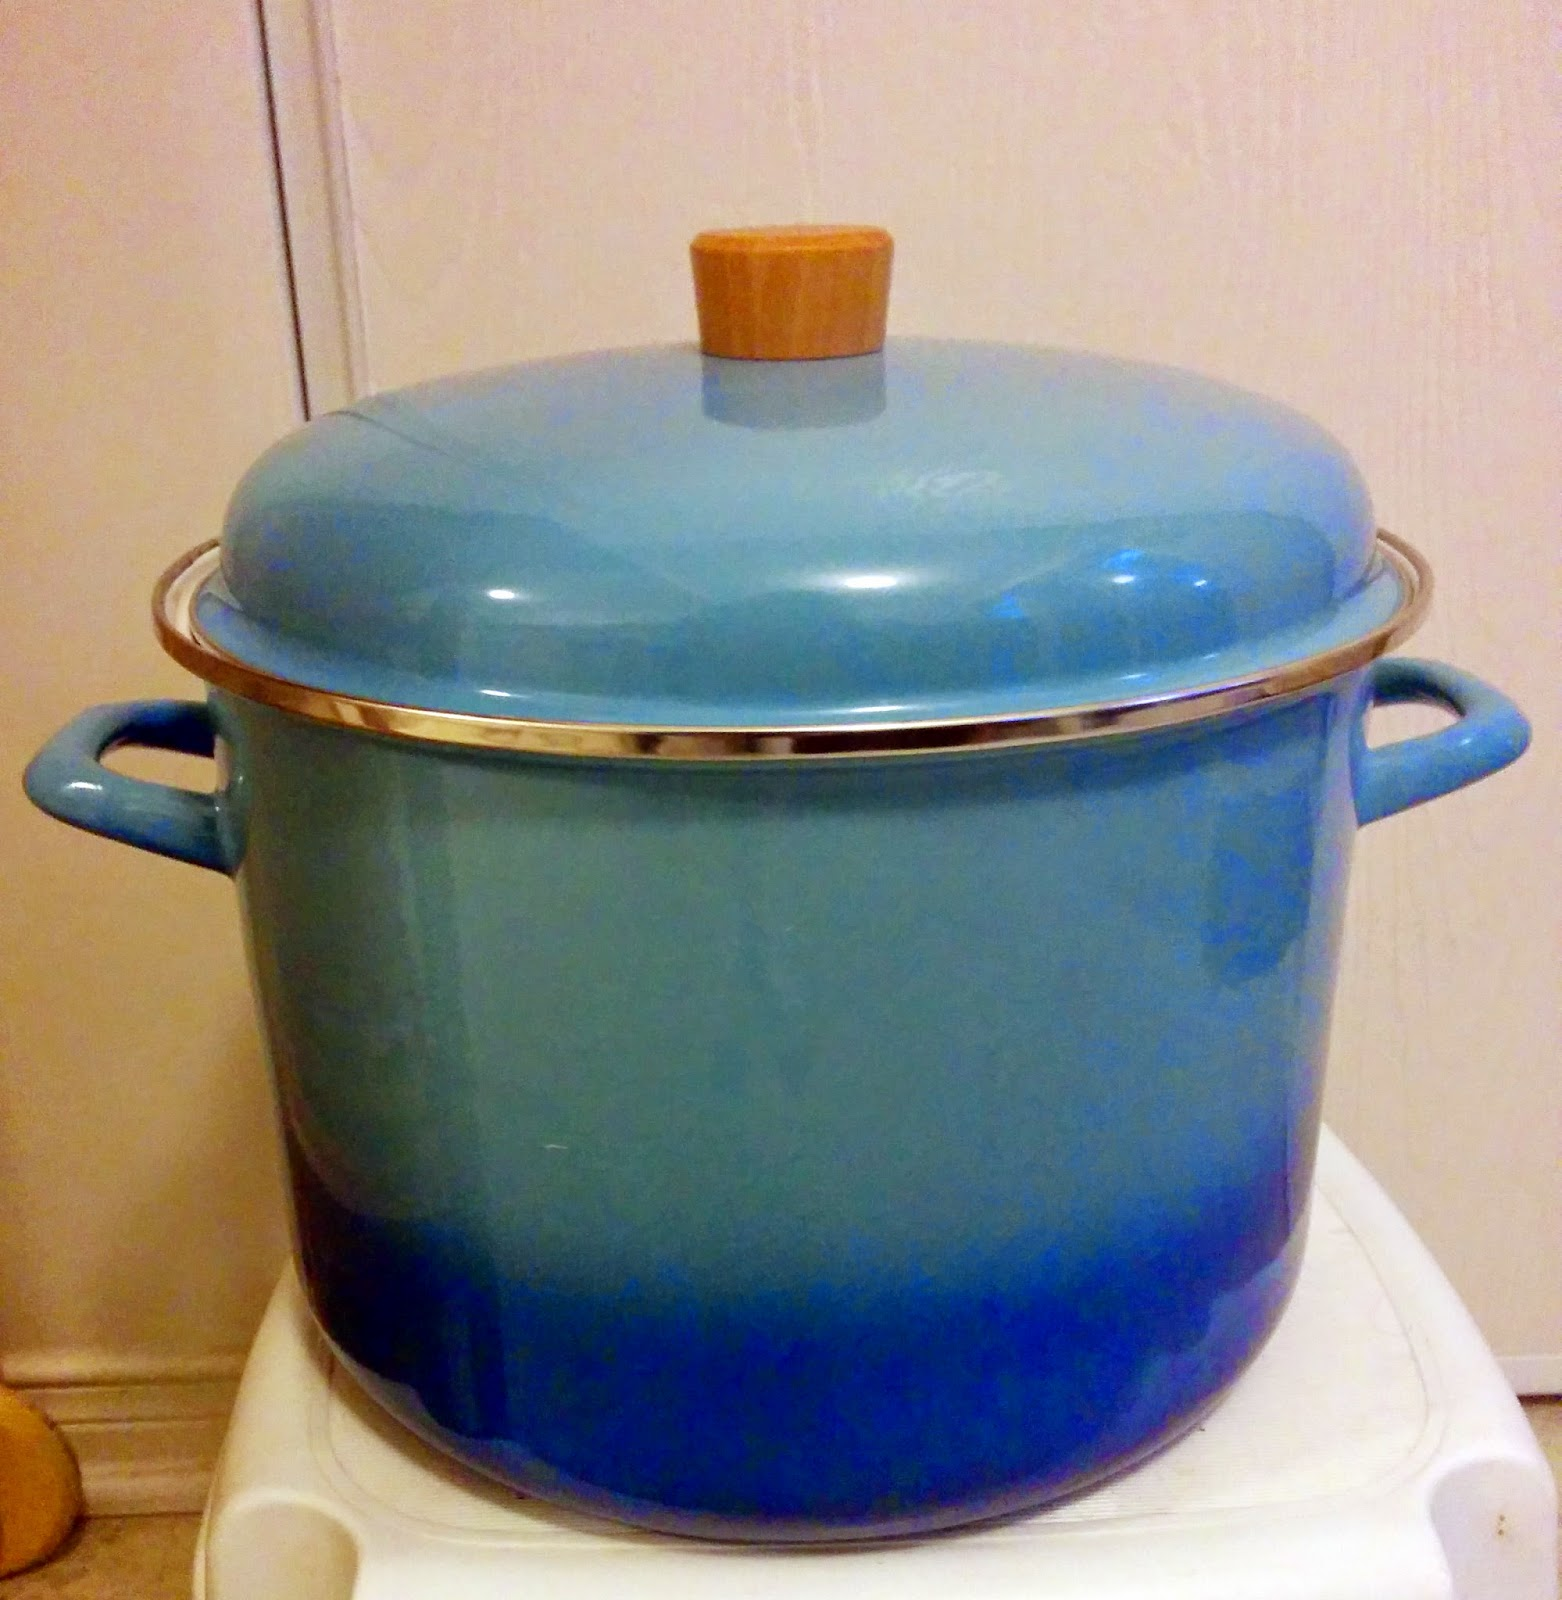 President's Choice ombre stock pot